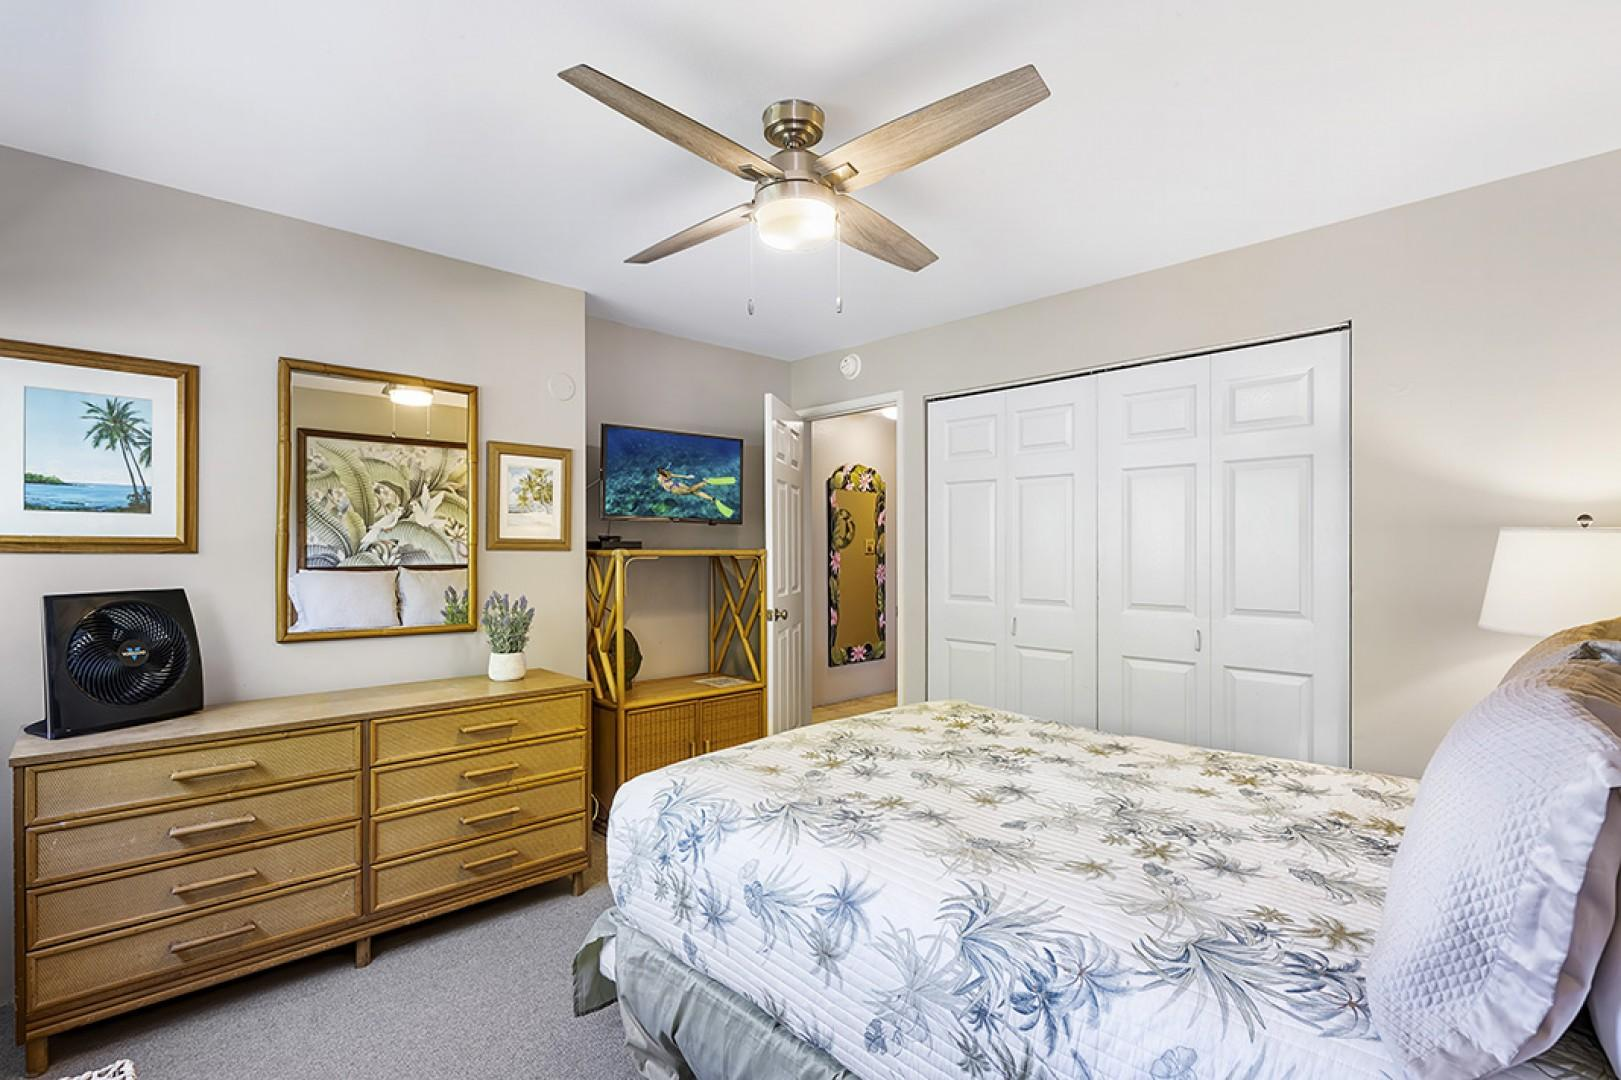 Master bedroom features a high speed fan to keep you cool in the evenings